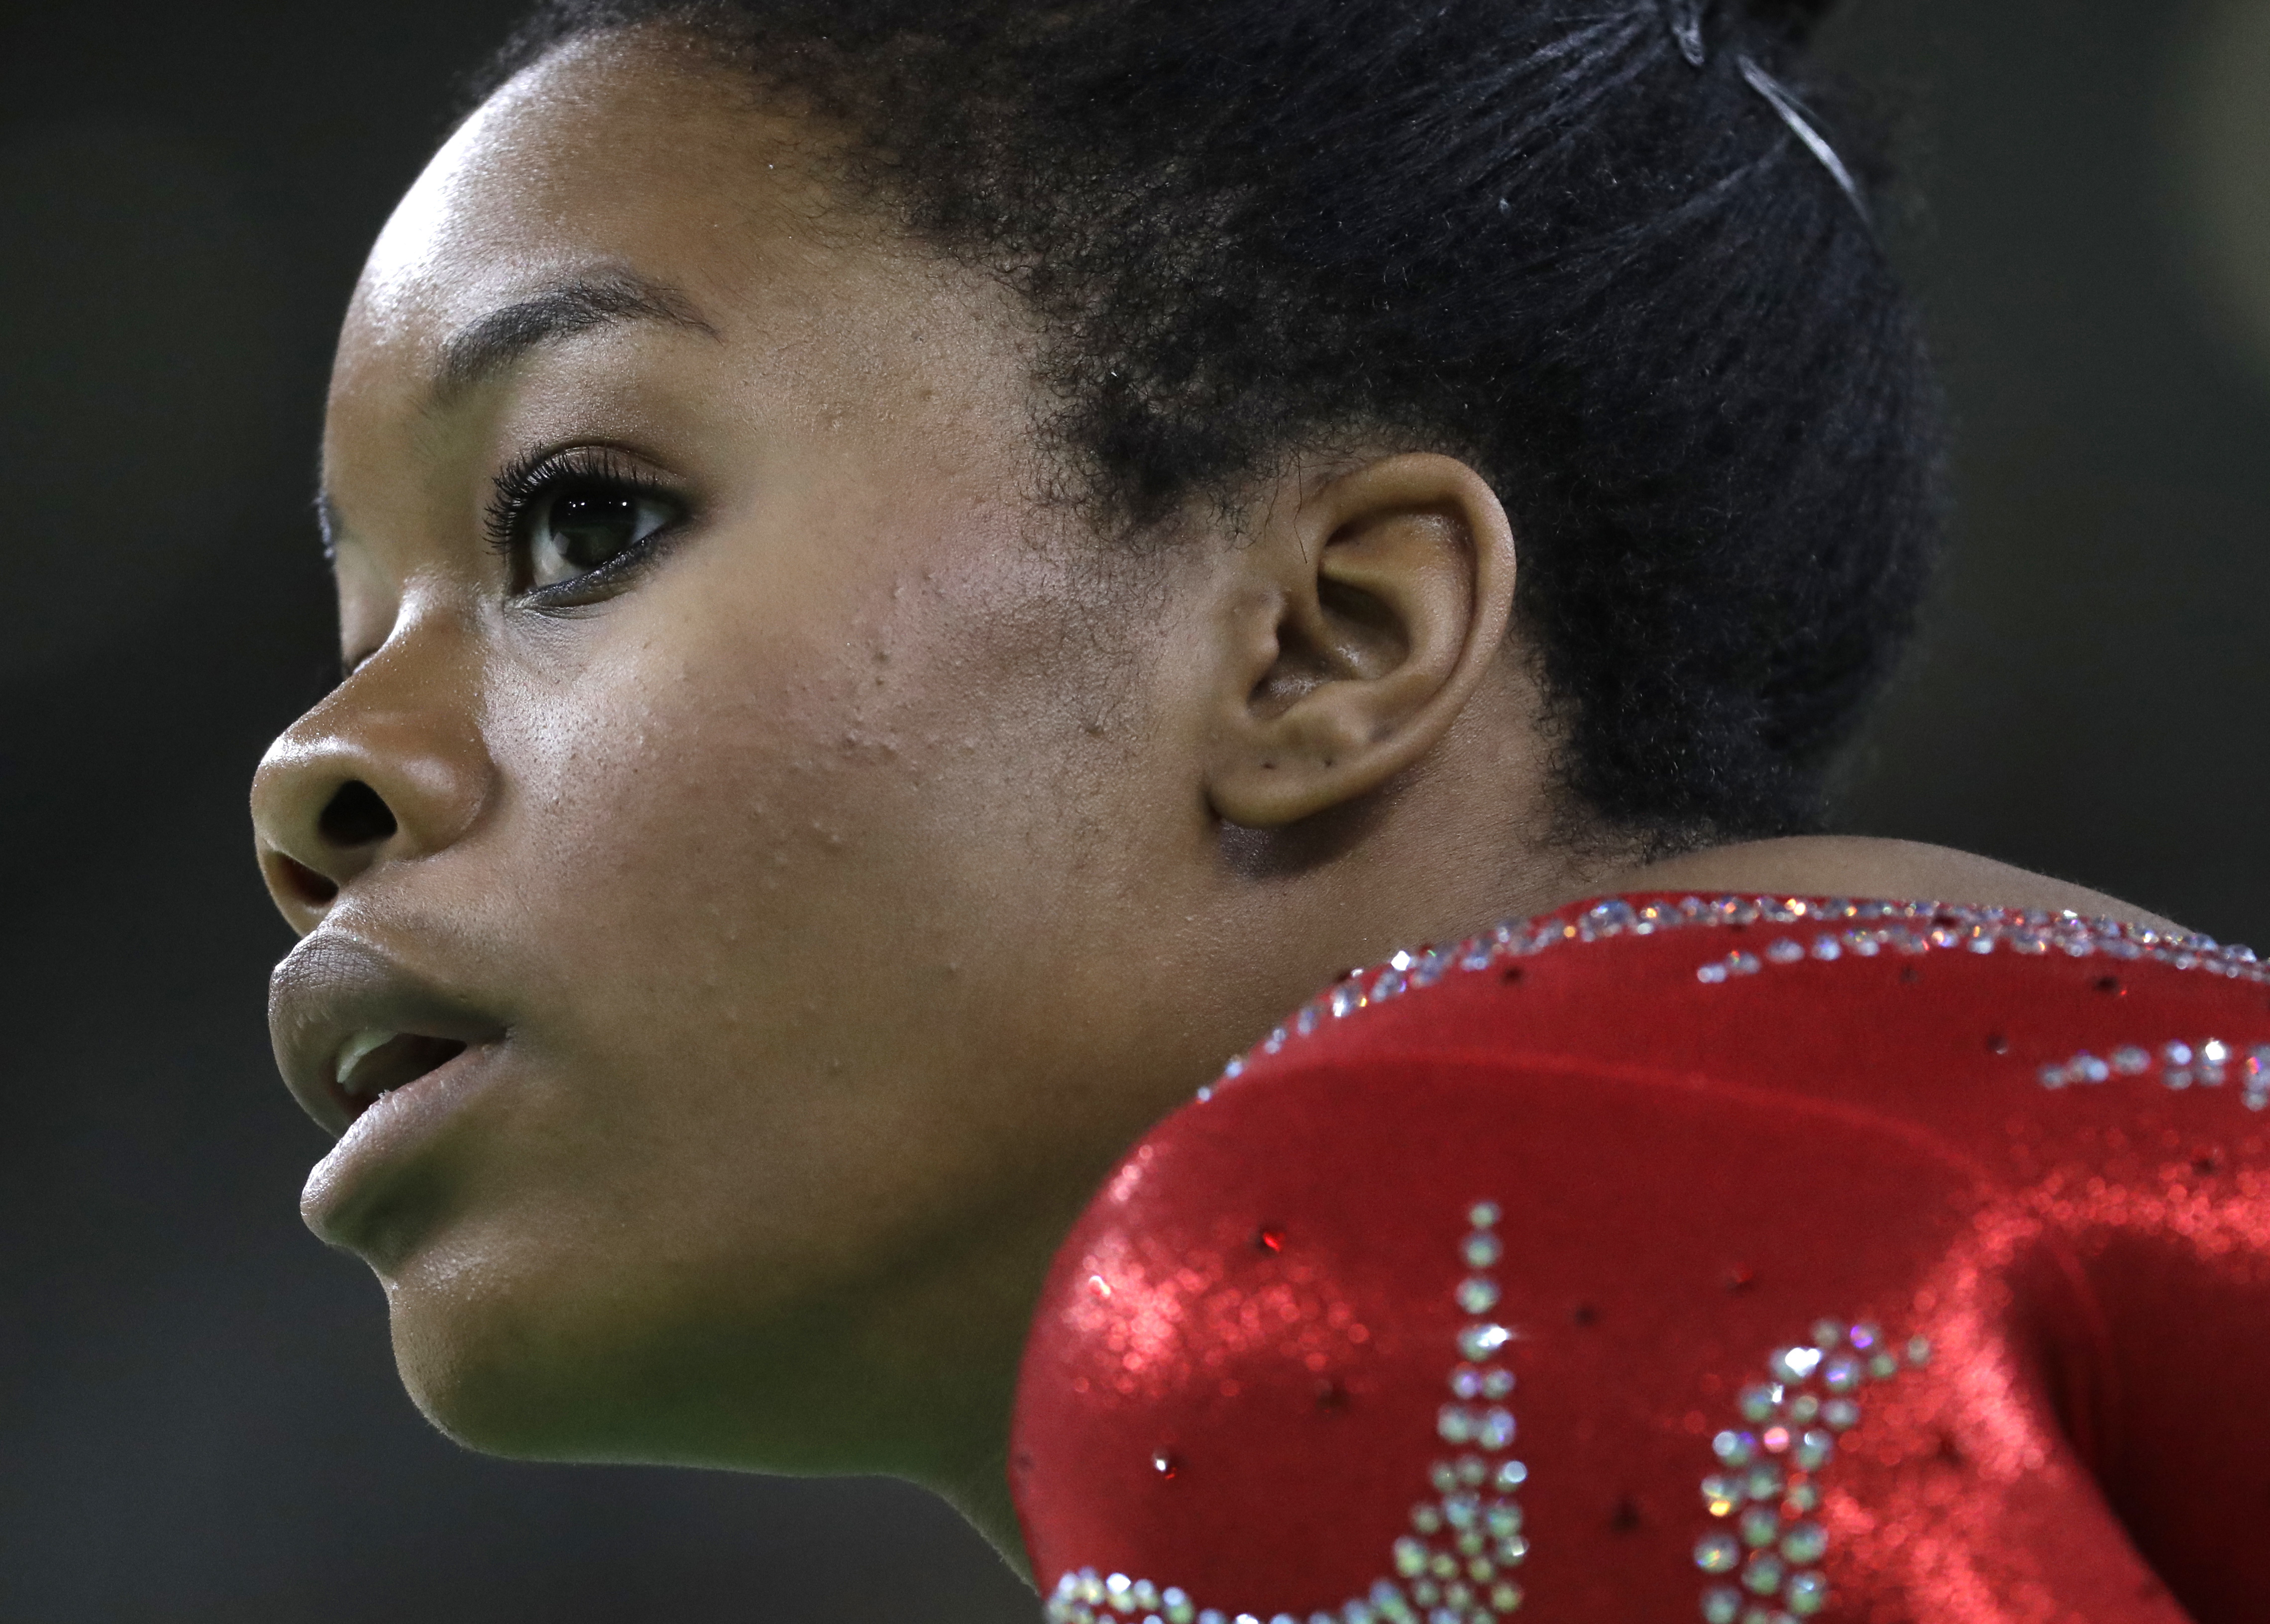 Gabrielle Douglas rests after her floor routine during the artistic gymnastics women's qualification at the 2016 Summer Olympics in Rio de Janeiro on Aug. 7, 2016.